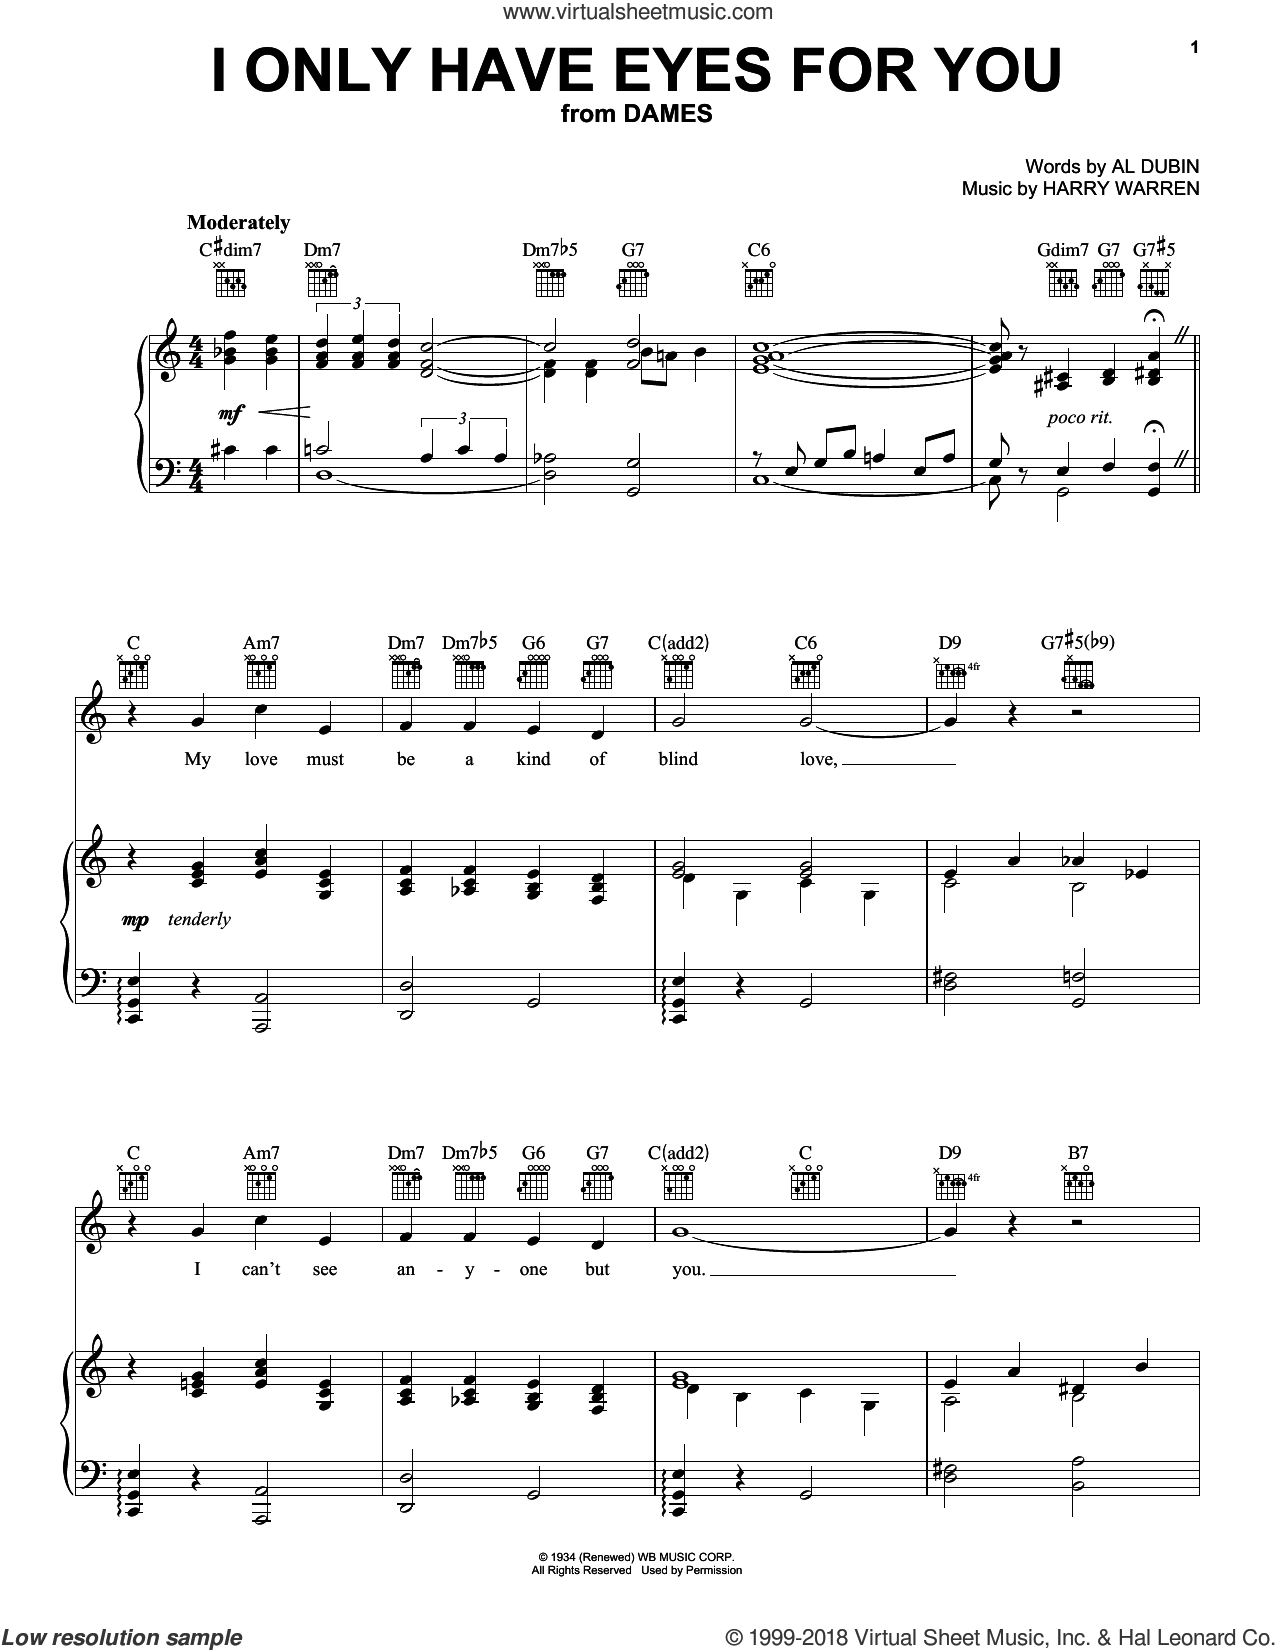 I Only Have Eyes For You sheet music for voice, piano or guitar by Harry Warren and Al Dubin, intermediate skill level